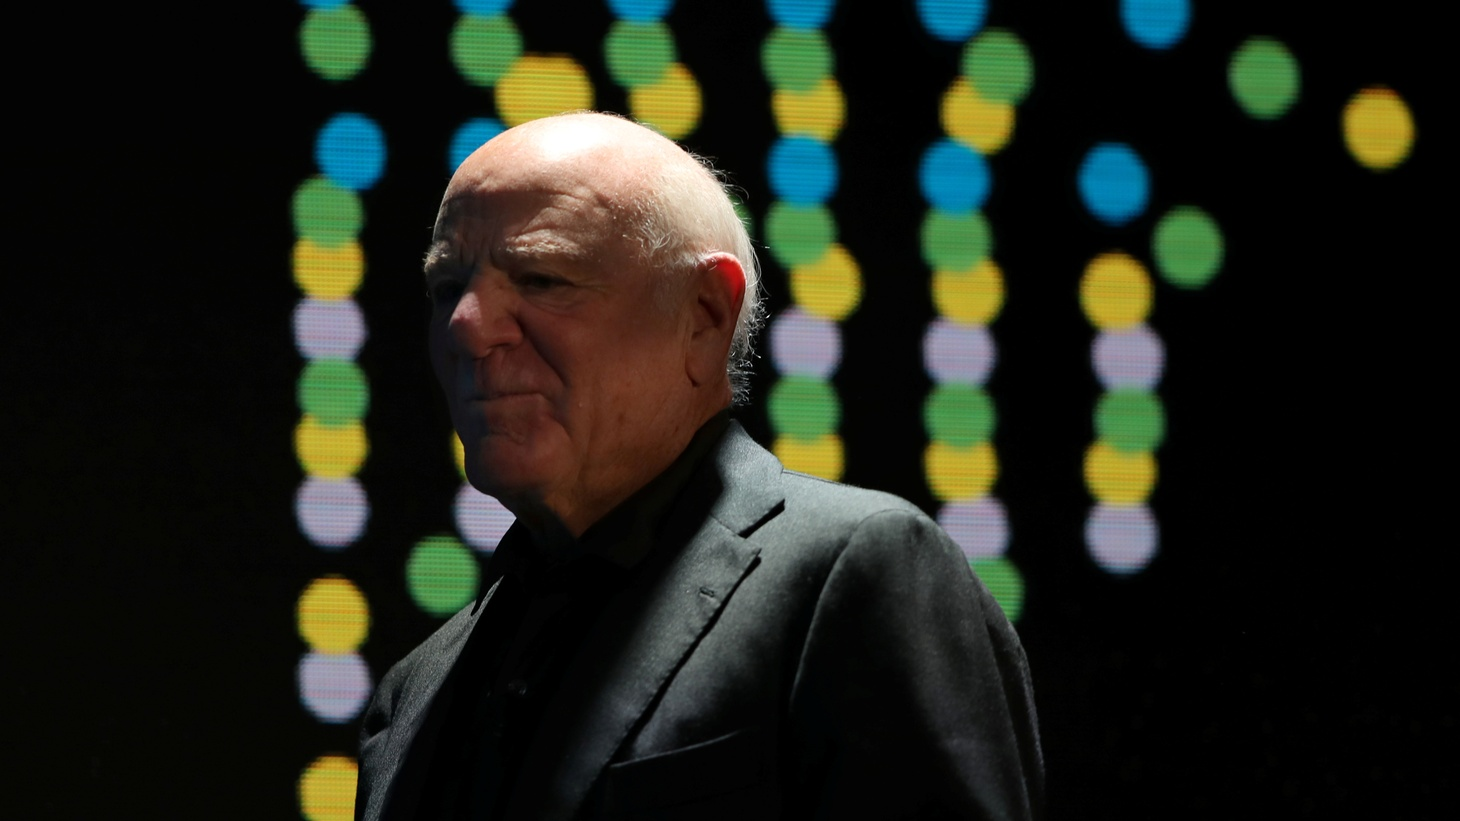 Barry Diller, Chairman and Senior Executive of IAC/InterActiveCorp and Expedia, Inc., looks on at the Wall Street Journal Digital Conference in Laguna Beach, California, U.S., October 17, 2017.